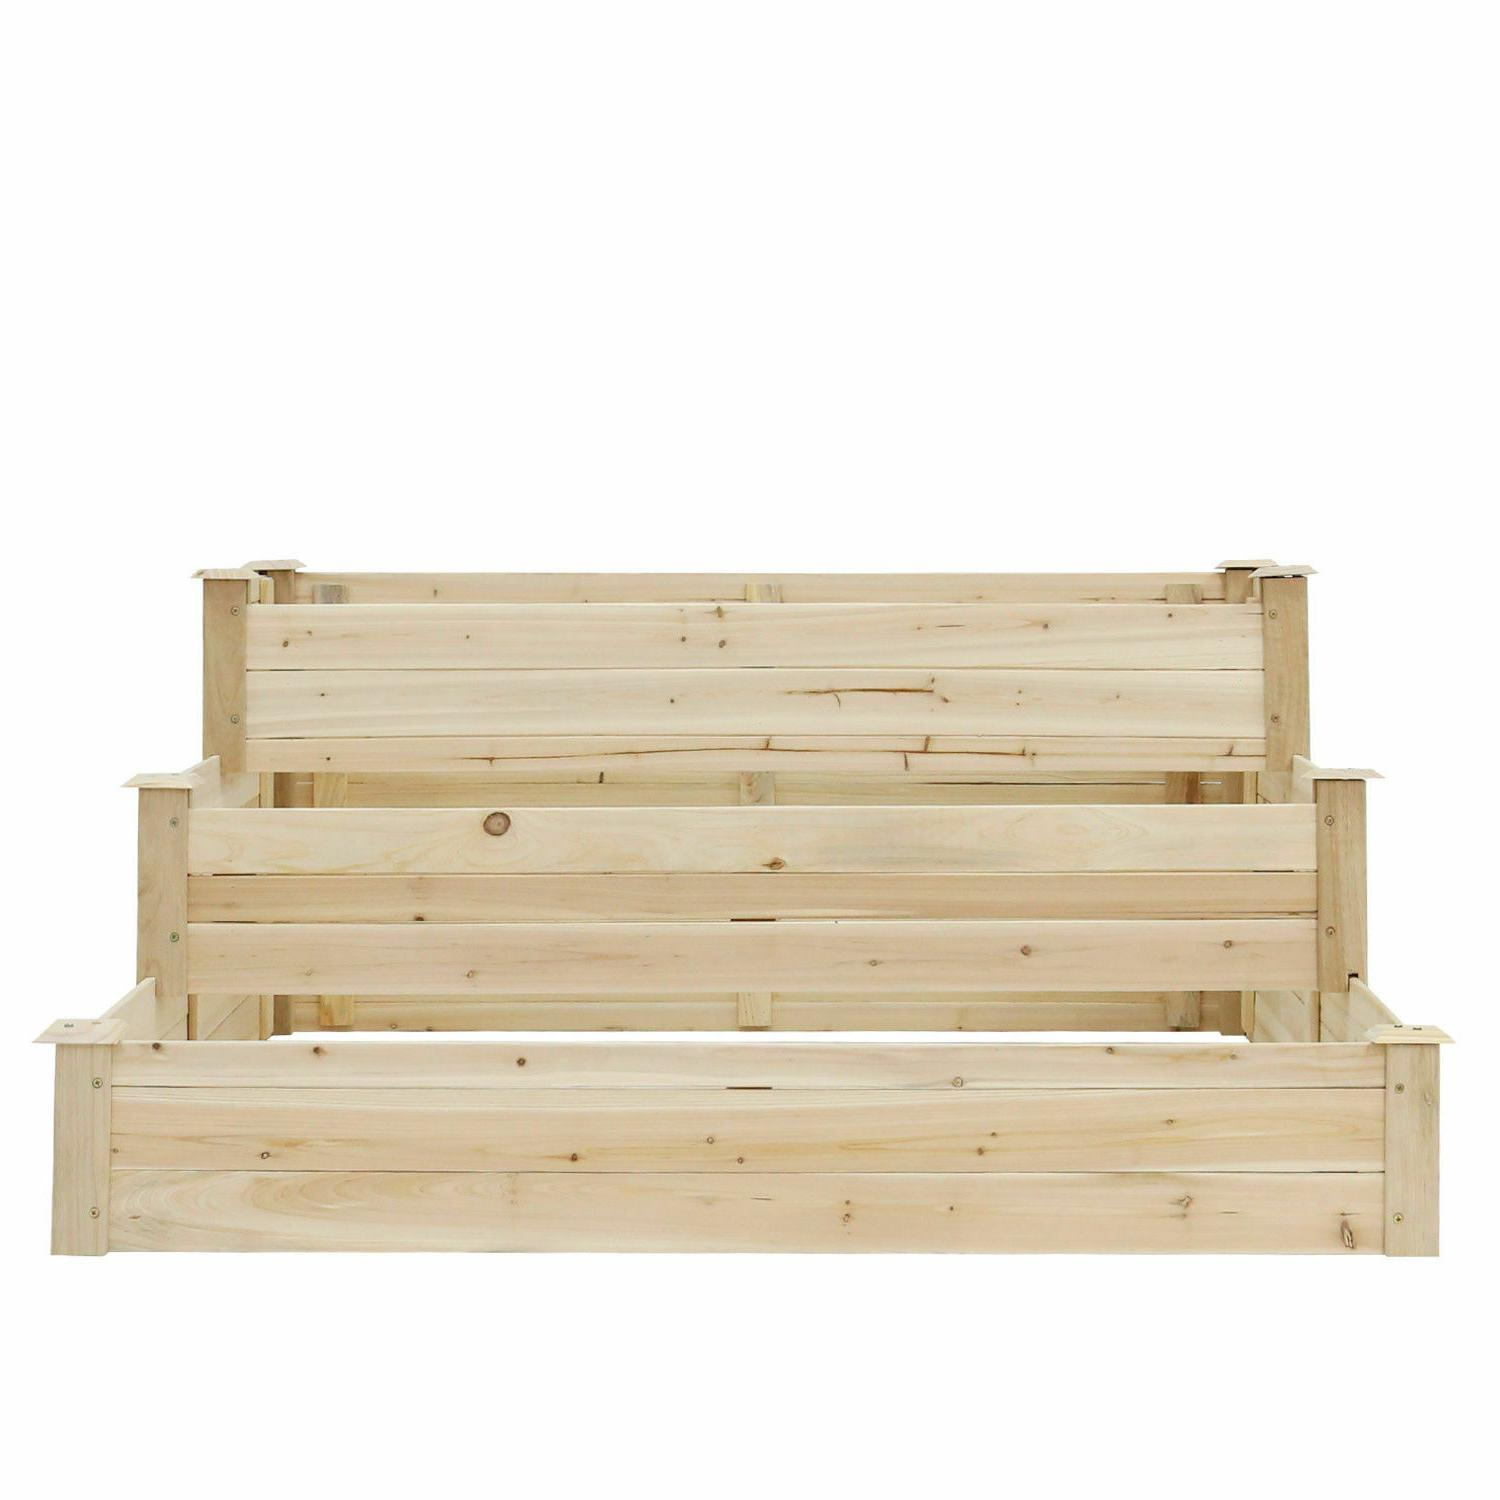 Raised Garden Patio Elevated Planter for